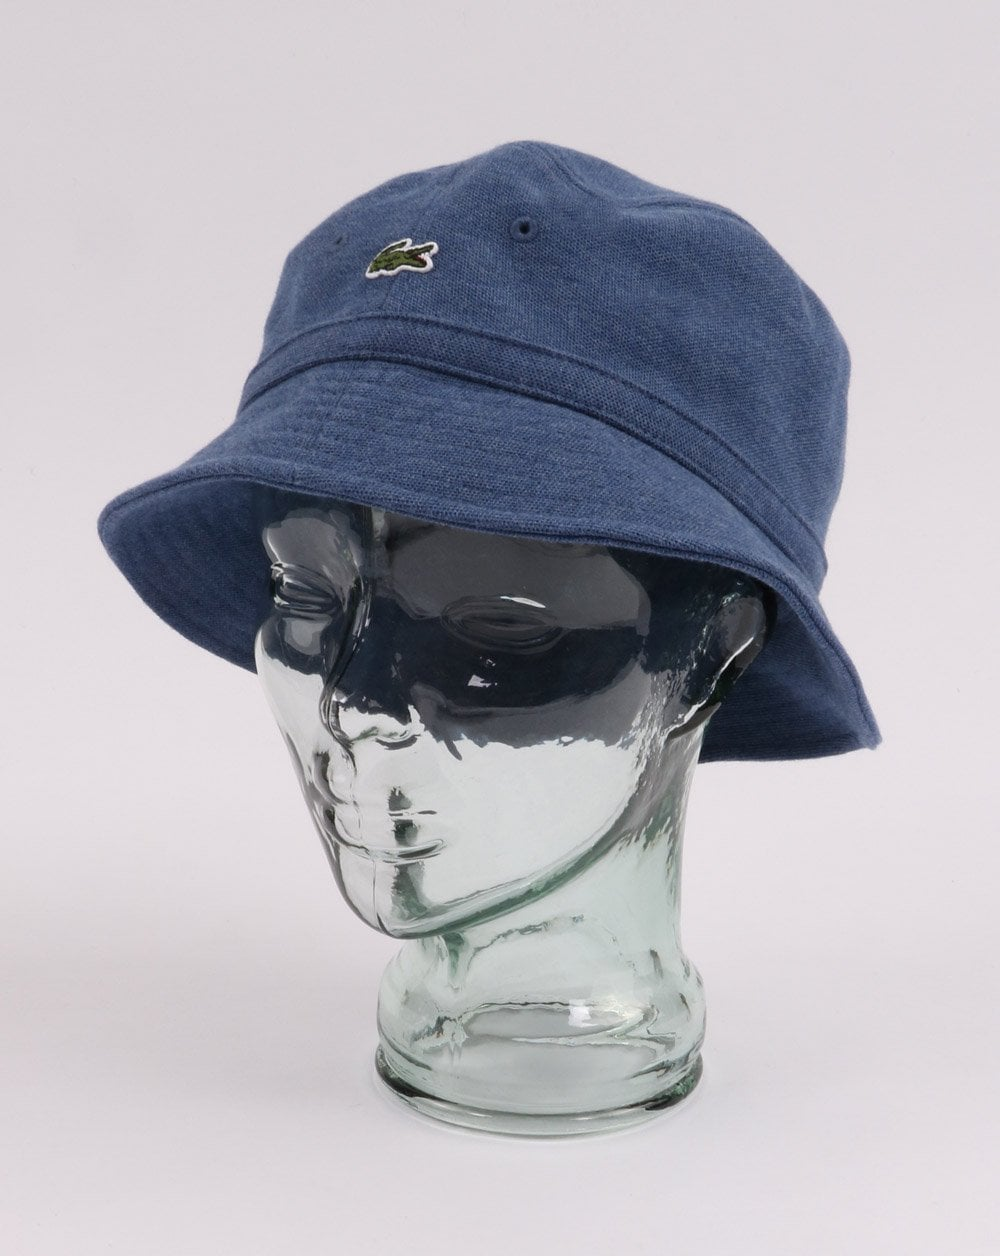 cf1f4bc2a9a Lacoste Lacoste Bucket Hat Blue Marl